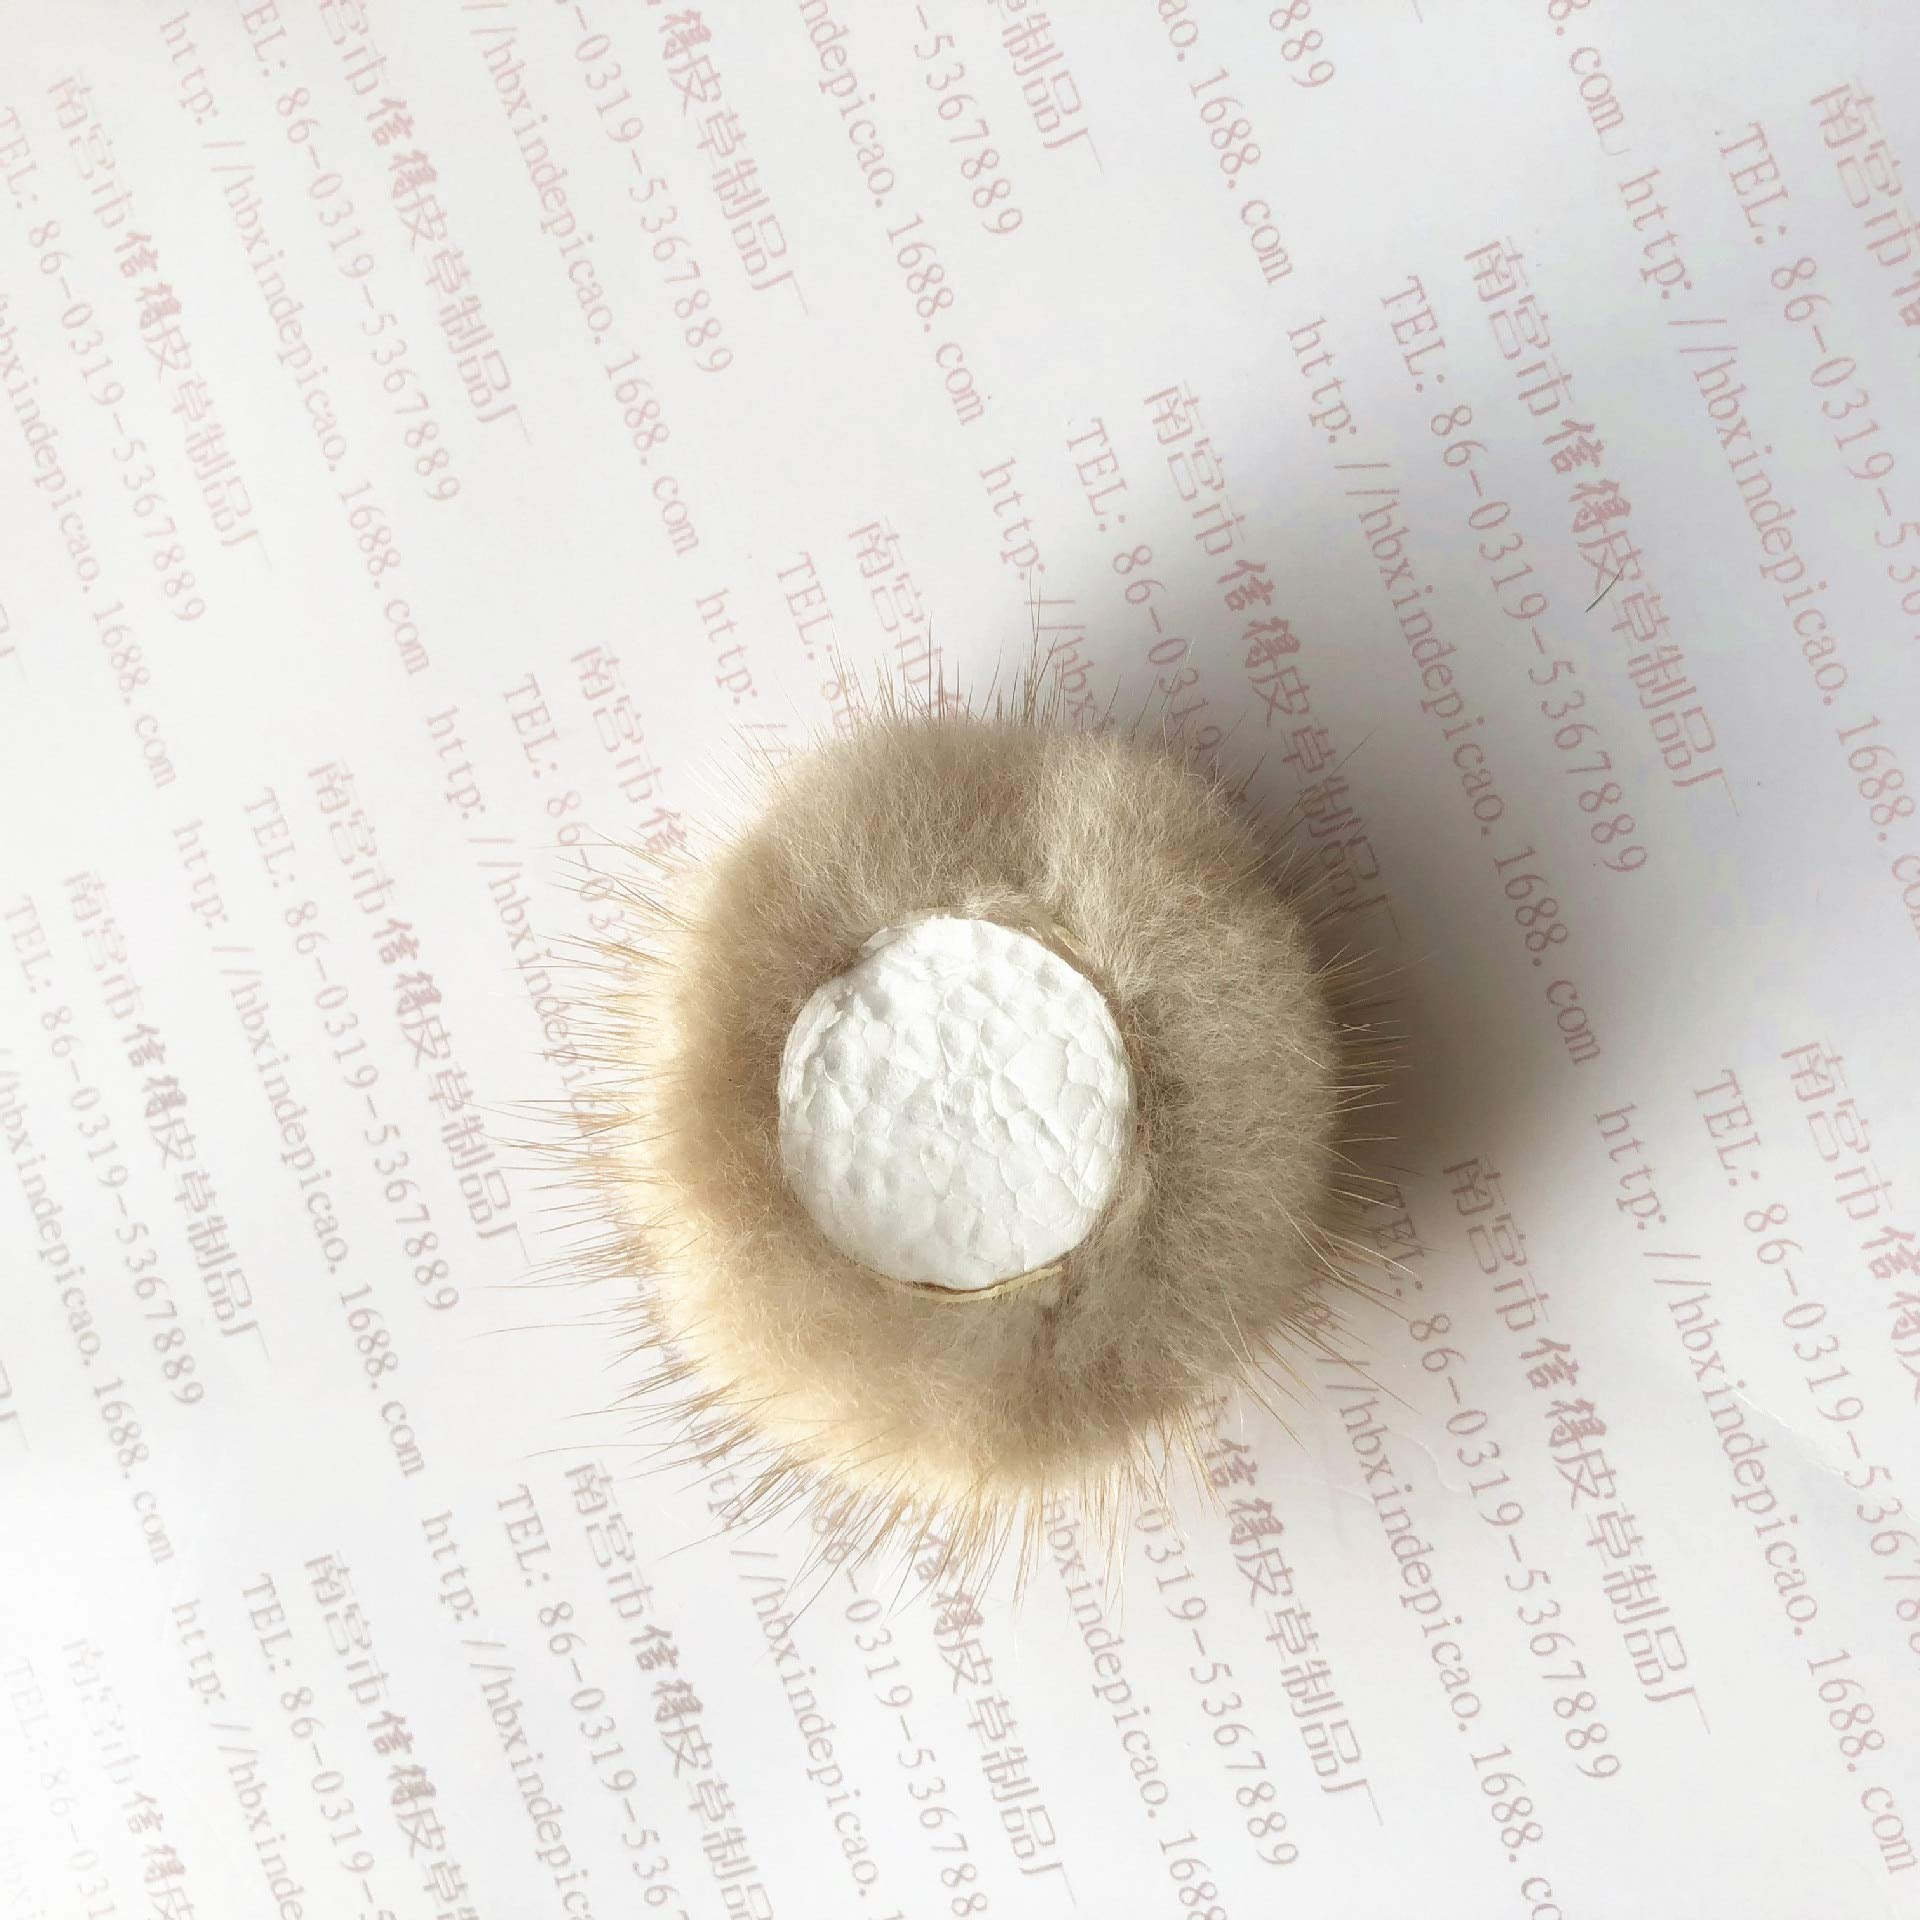 Dalab 10pcs DIY 5.5 6.5cm Mink Pompoms Fur Balls for Sewing On Knitted Beanies Keychain Scarves Shoes Hats Fur Pom Pom DIY Accessories - (Color: Amy Green, Size: 5.5cm)